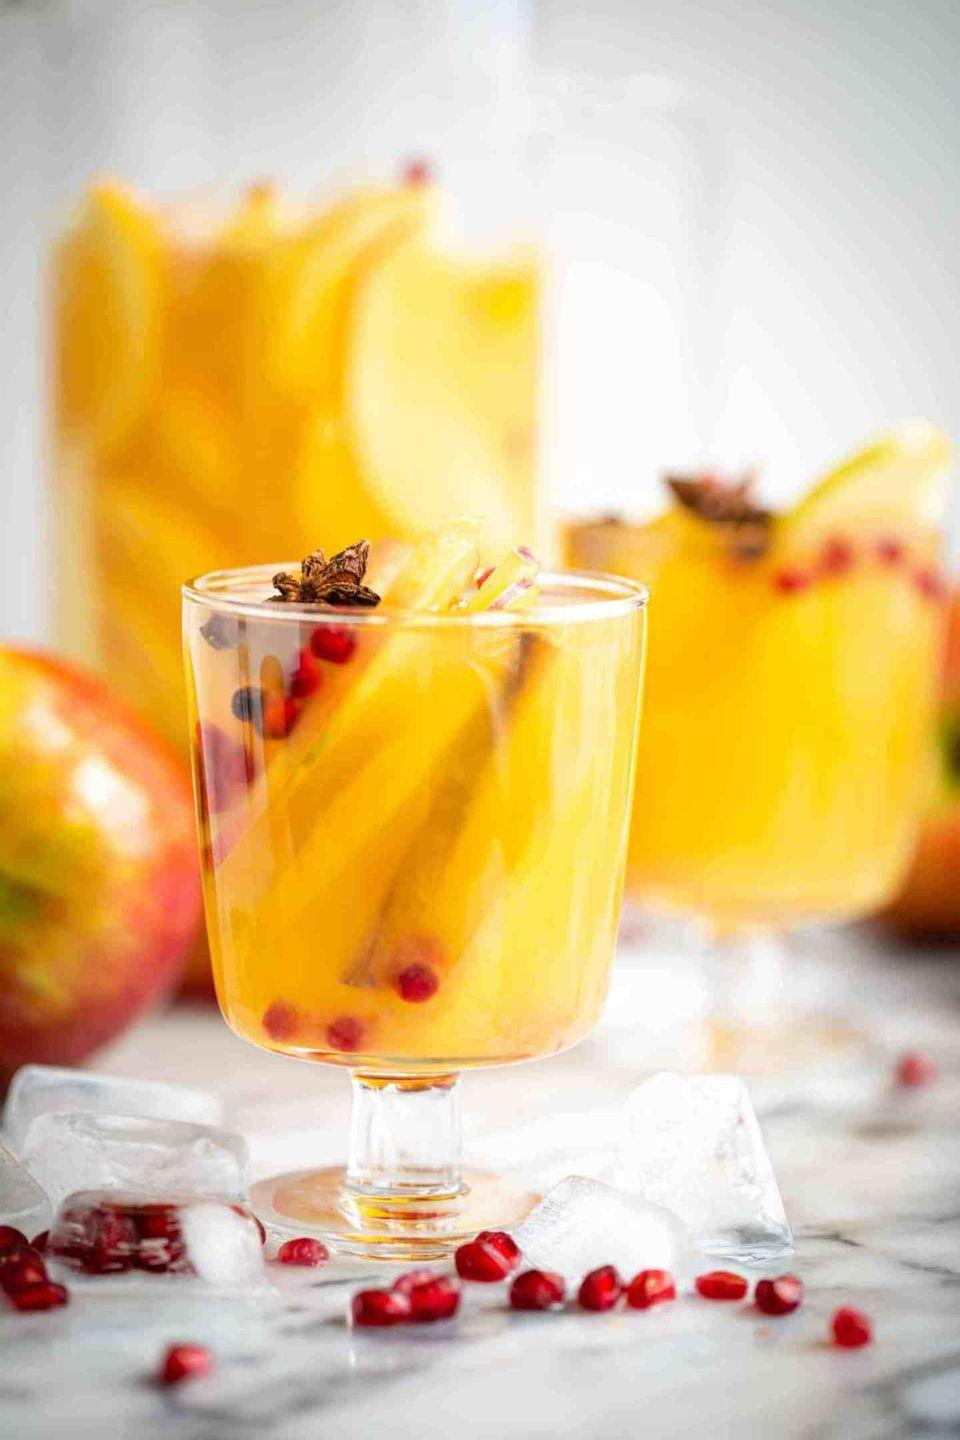 """<p>Garnish this flavorful sangria with cinnamon sticks and star anise to make it even more festive.</p><p><strong>Get the recipe at <a href=""""https://www.butterbeready.com/autumn-apple-sangria/"""" rel=""""nofollow noopener"""" target=""""_blank"""" data-ylk=""""slk:Butter Be Ready"""" class=""""link rapid-noclick-resp"""">Butter Be Ready</a>.</strong></p><p><a class=""""link rapid-noclick-resp"""" href=""""https://go.redirectingat.com?id=74968X1596630&url=https%3A%2F%2Fwww.walmart.com%2Fsearch%2F%3Fquery%3Dpioneer%2Bwoman%2Bpitcher&sref=https%3A%2F%2Fwww.thepioneerwoman.com%2Ffood-cooking%2Fmeals-menus%2Fg33510531%2Ffall-cocktail-recipes%2F"""" rel=""""nofollow noopener"""" target=""""_blank"""" data-ylk=""""slk:SHOP PITCHERS"""">SHOP PITCHERS</a> </p>"""